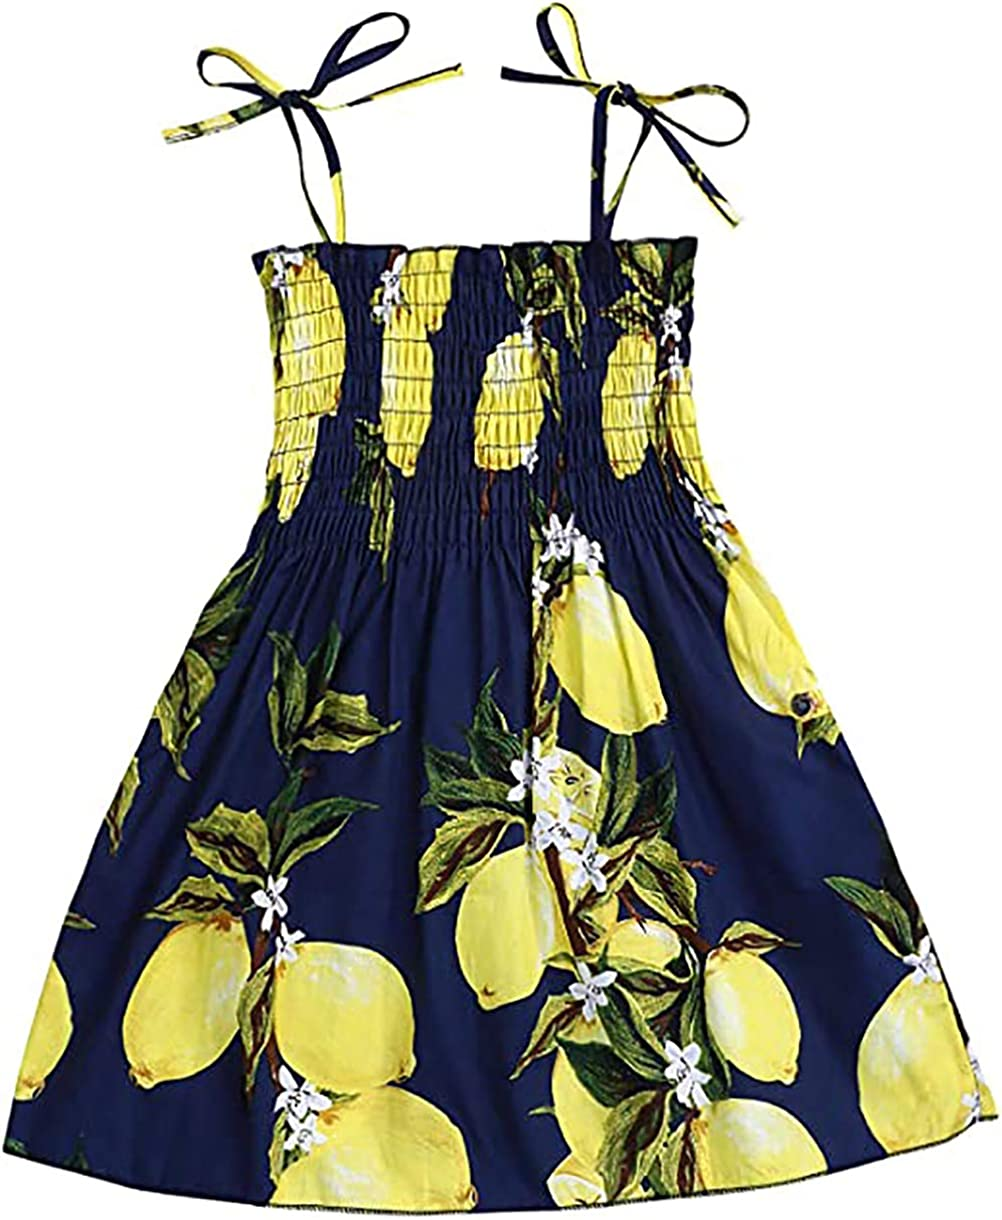 Casual Baby Girl Floral Summer Dress Outfits Kids Toddler Strap Elastic Beach Dress Playwear Clothes 1-6 Years